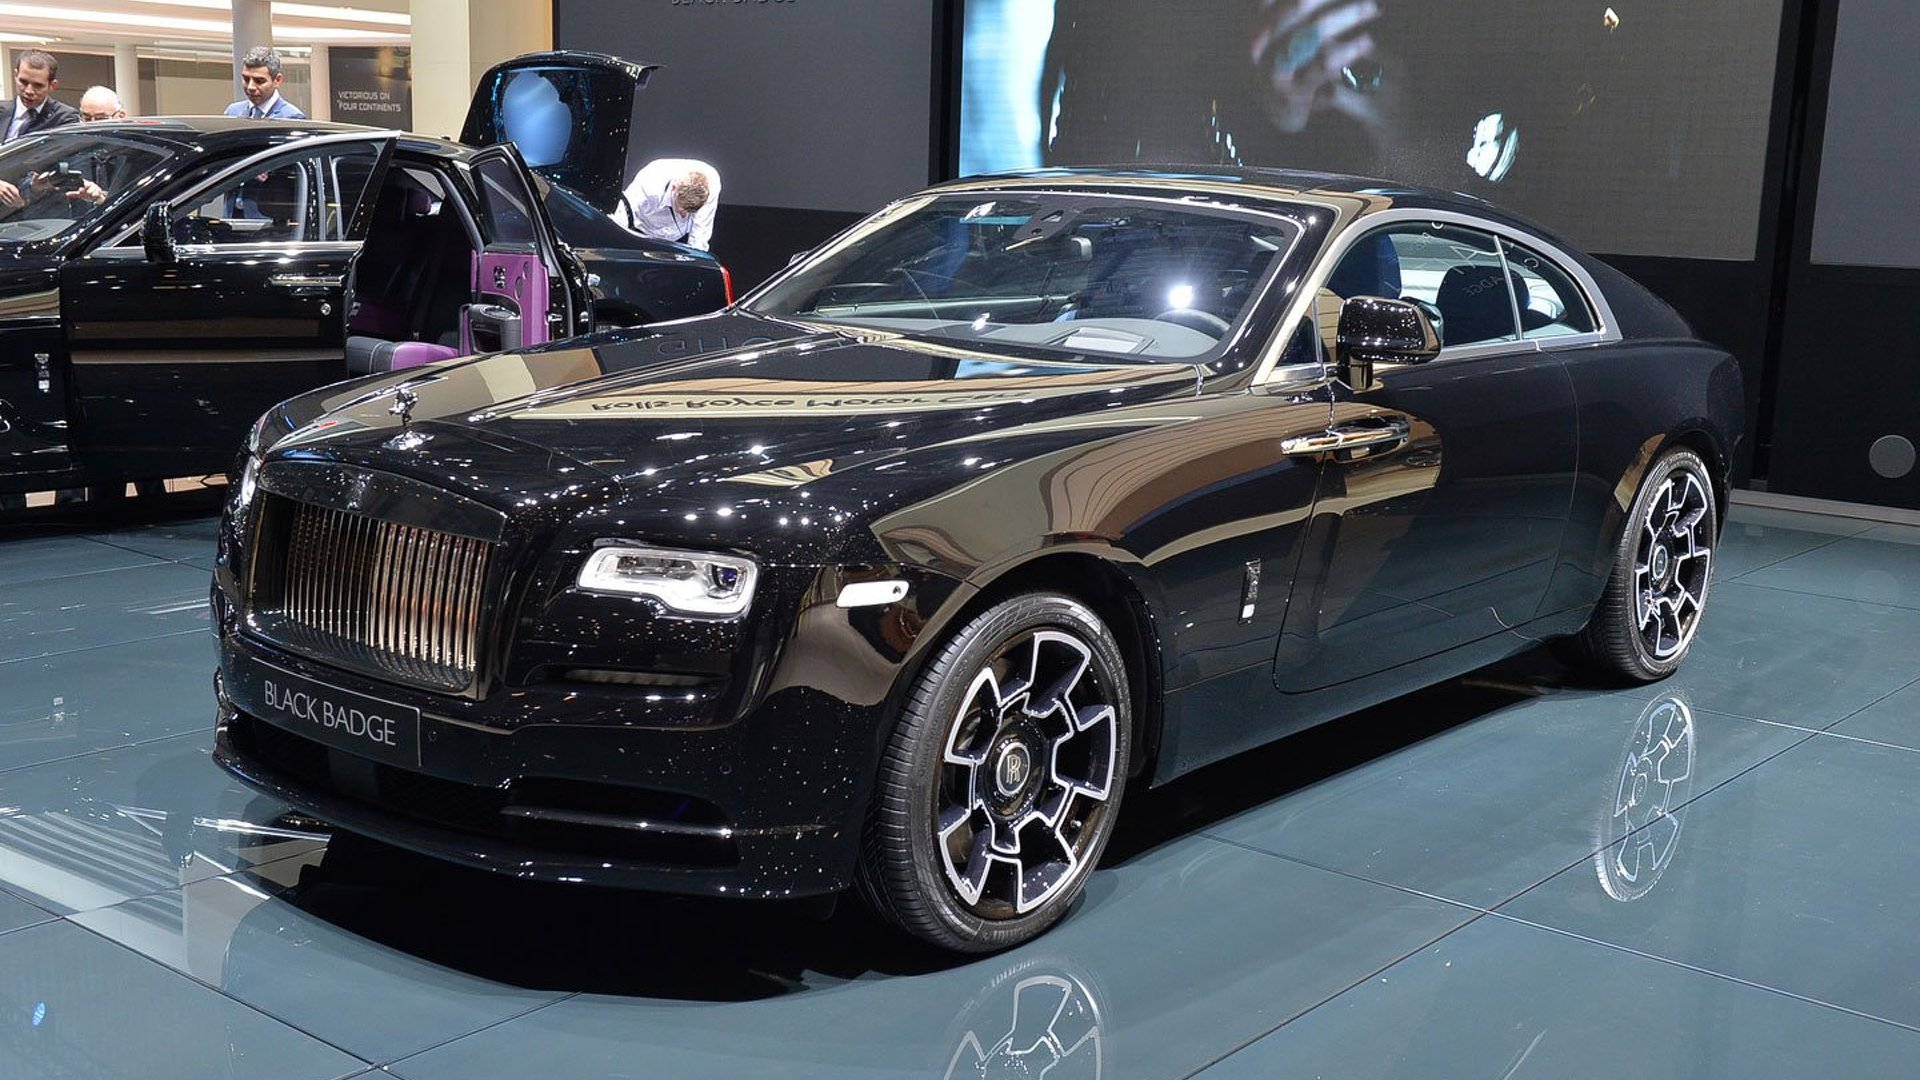 rolls royce ghost wraith gain bespoke black badge editions. Black Bedroom Furniture Sets. Home Design Ideas